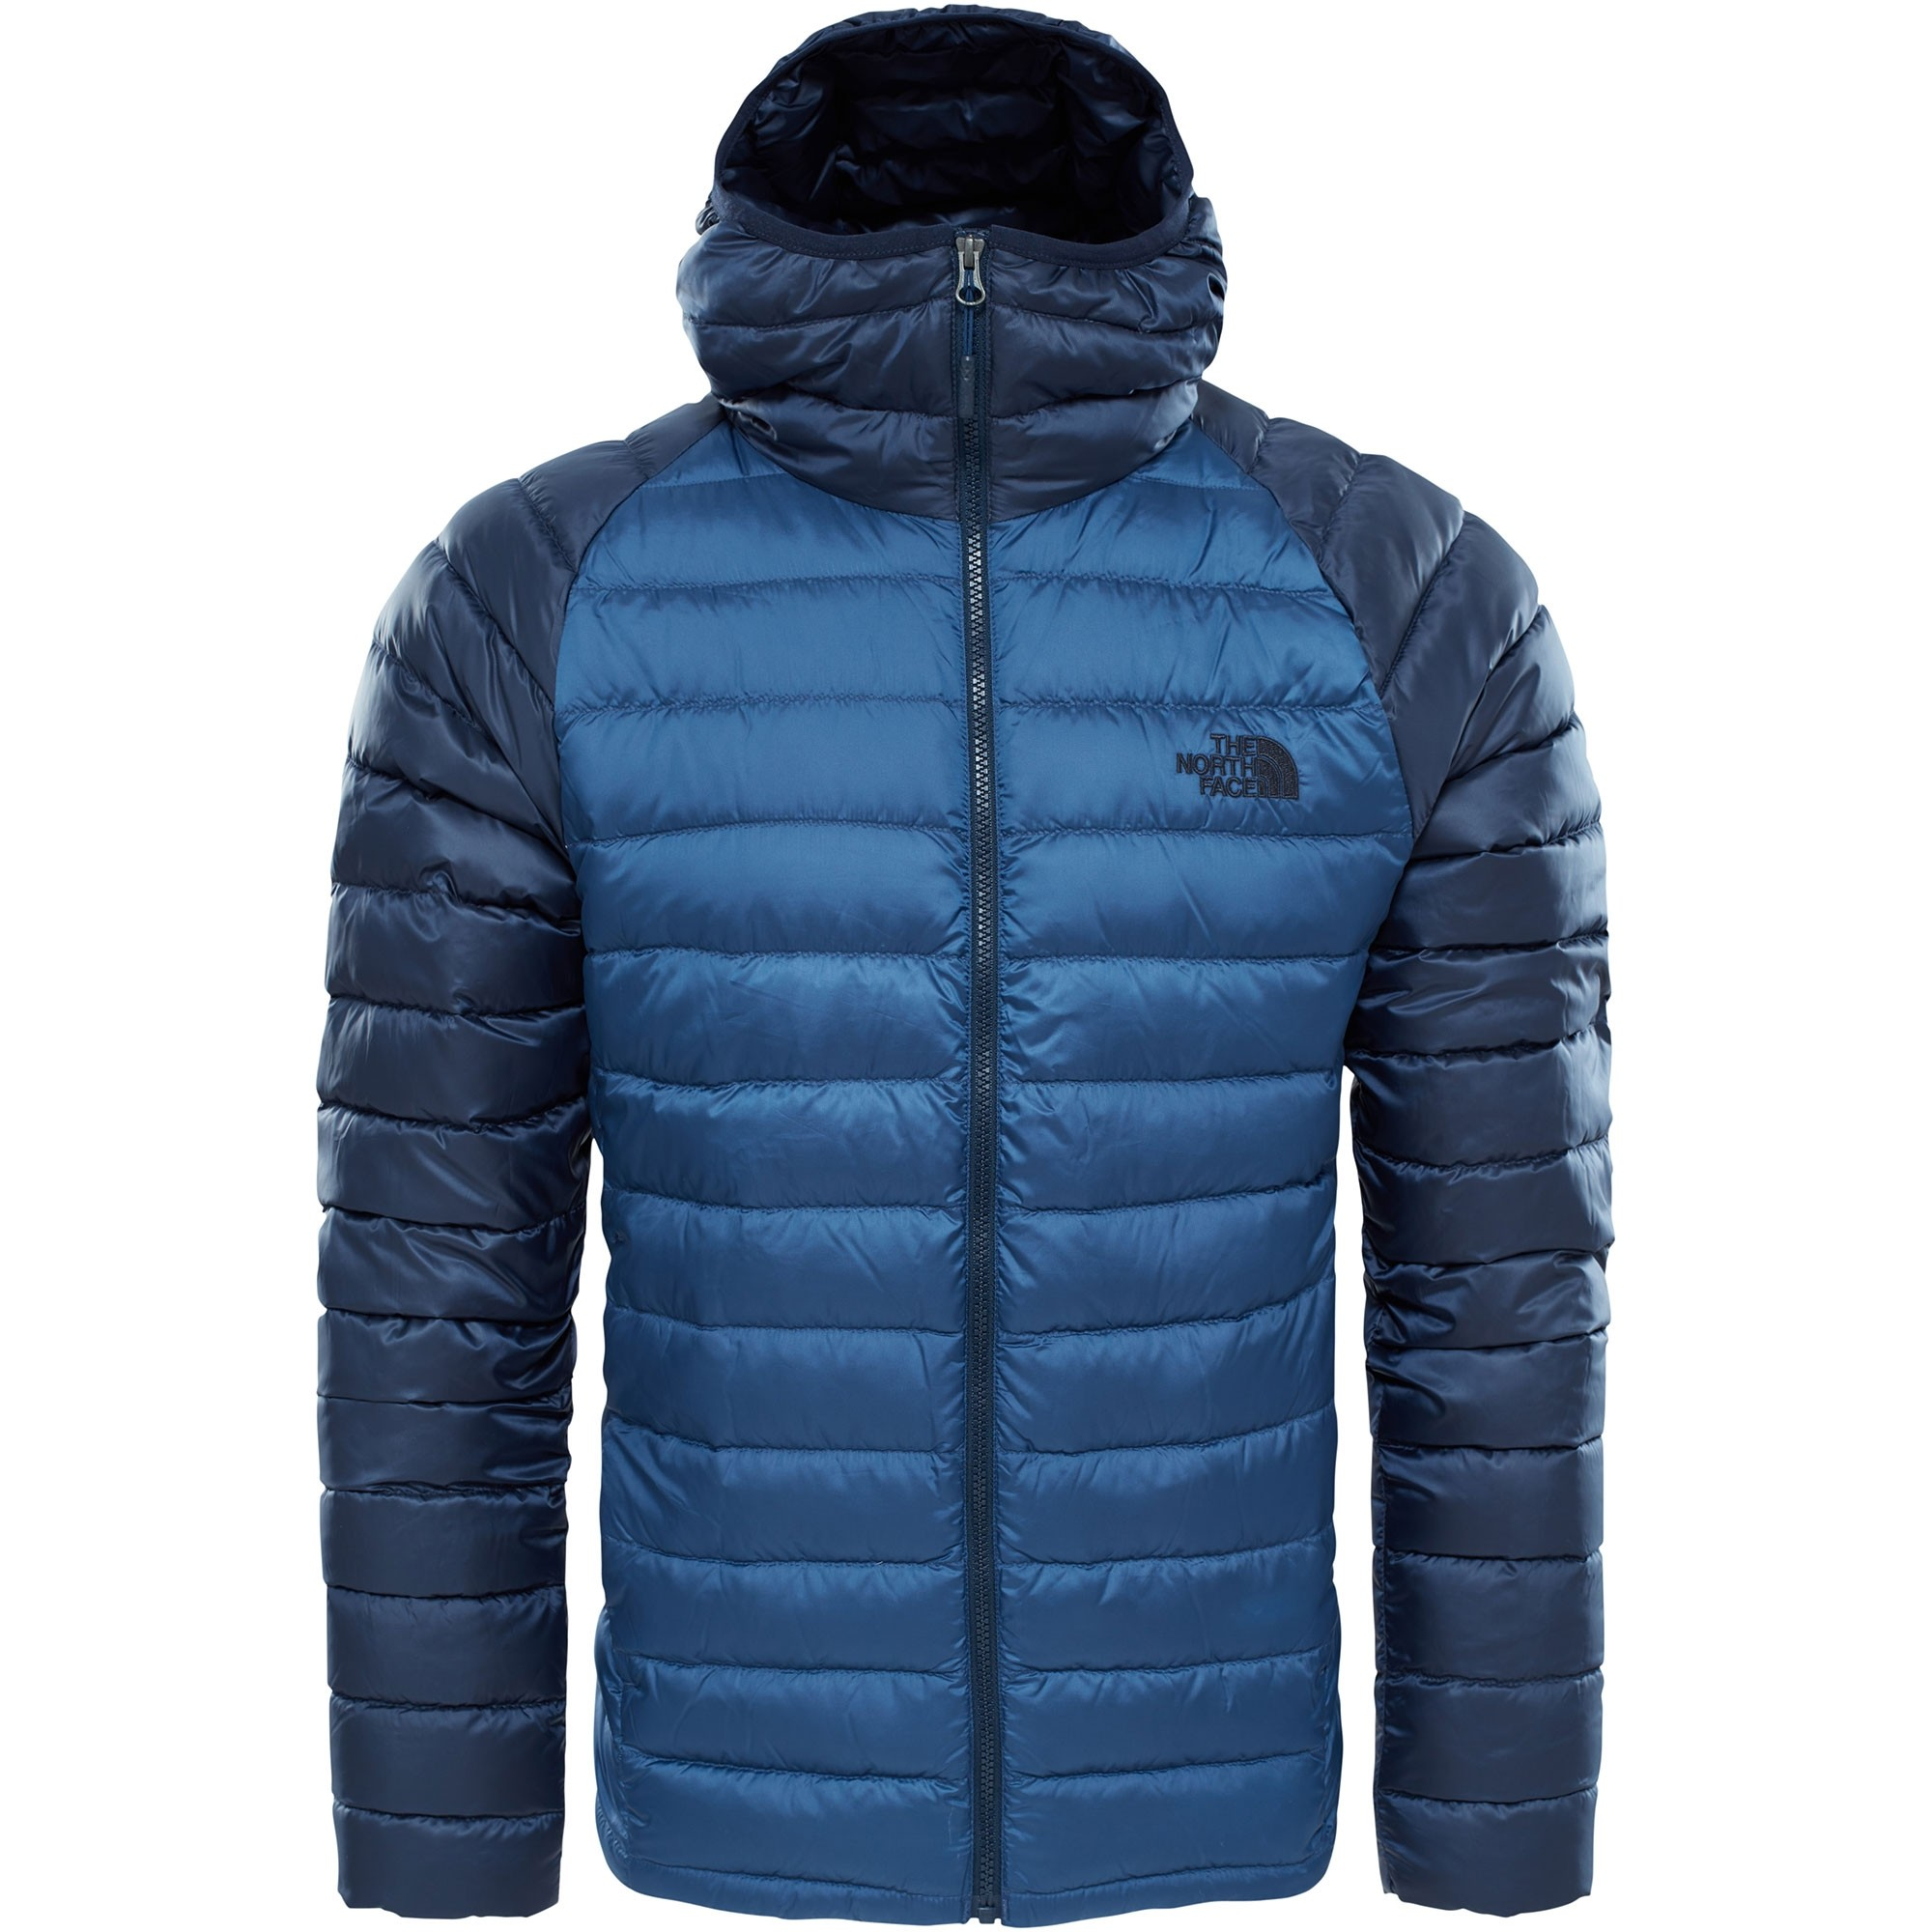 The-North-Face-Trevail-Hoodie-Shady-Blue-Urban-Navy-W17